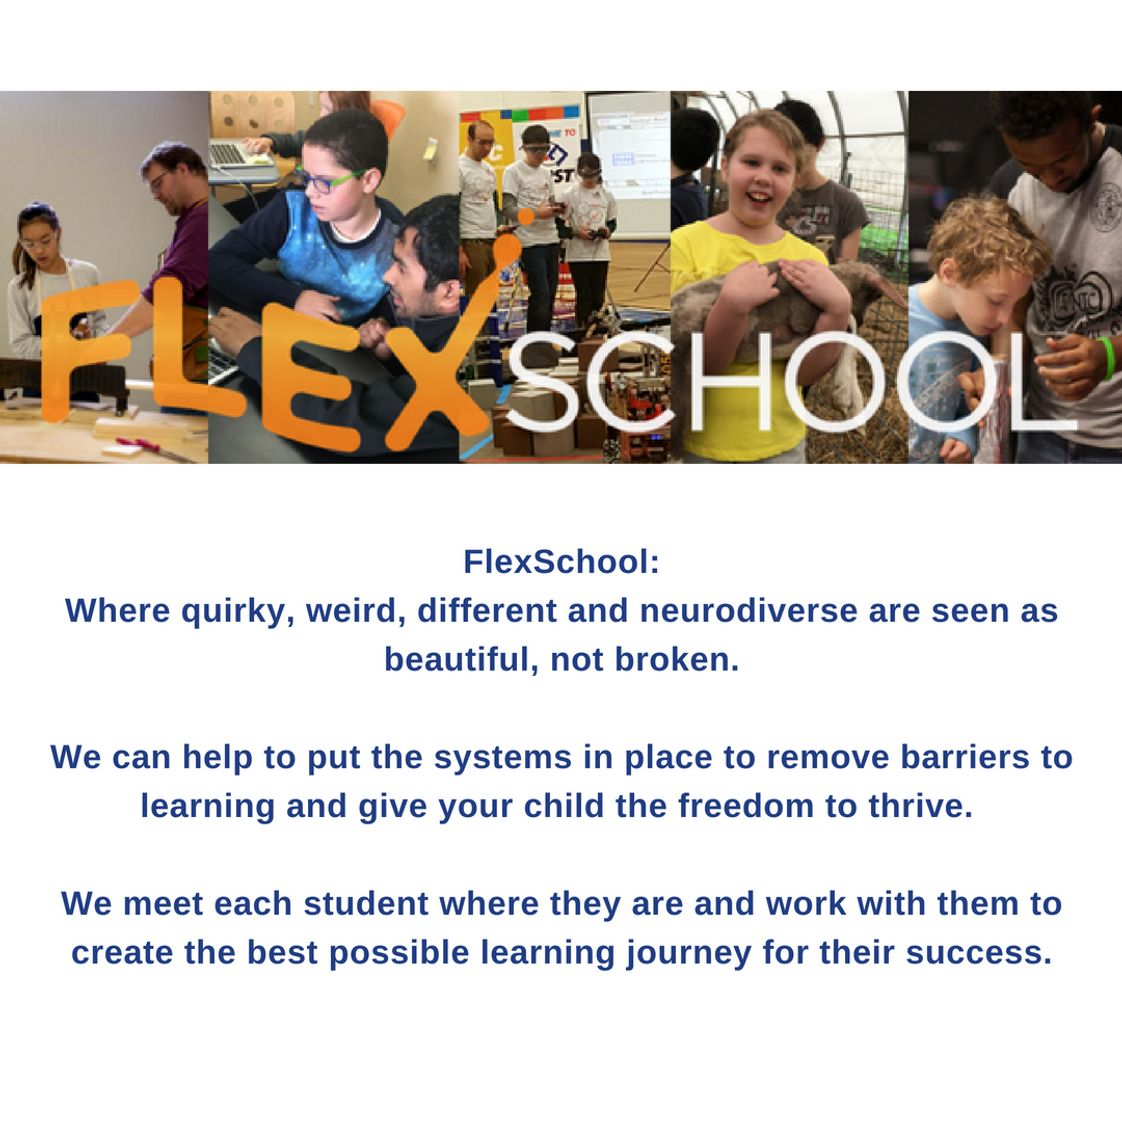 FlexSchool Photo